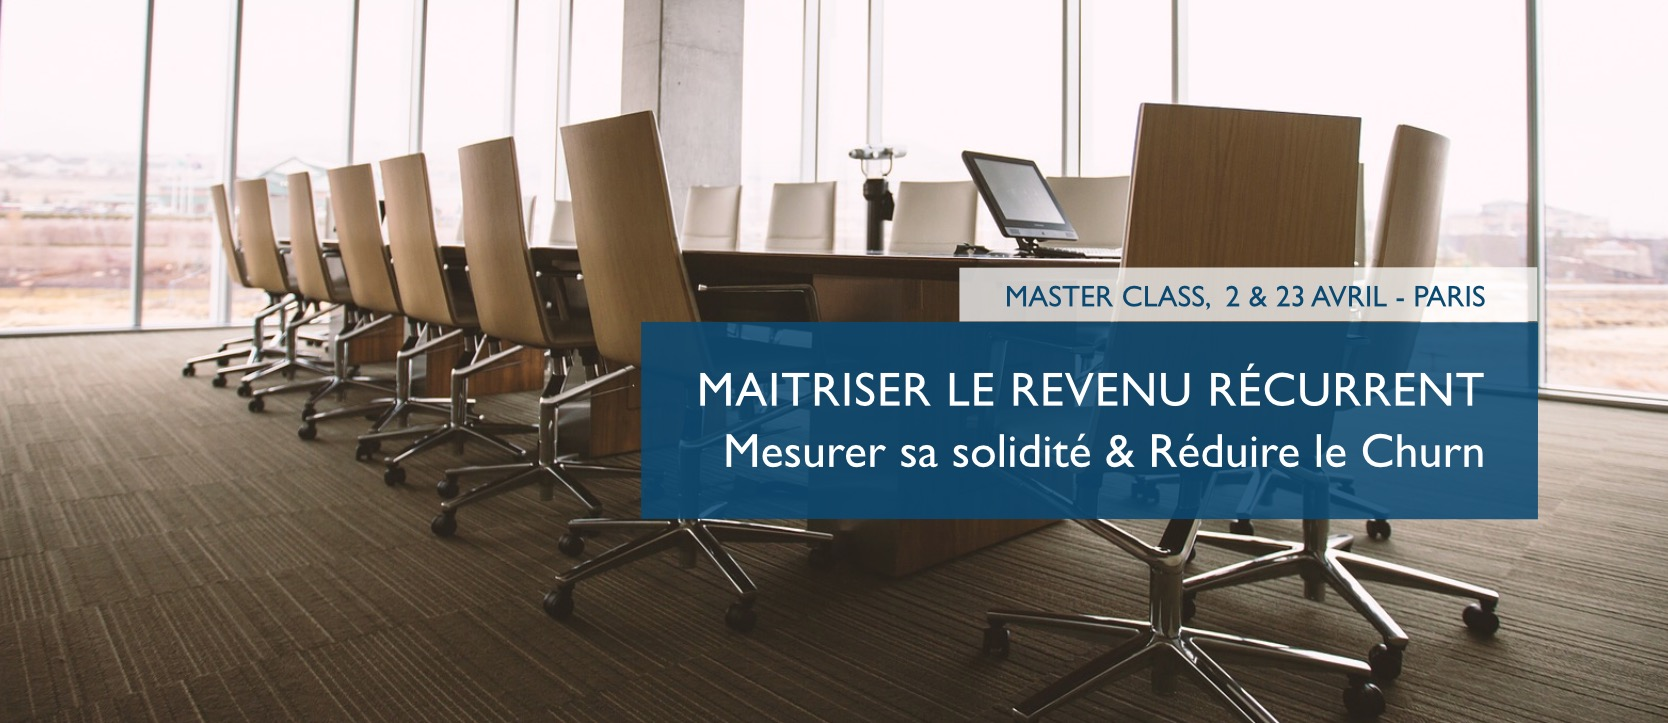 Maitriser le revenu récurrent churn